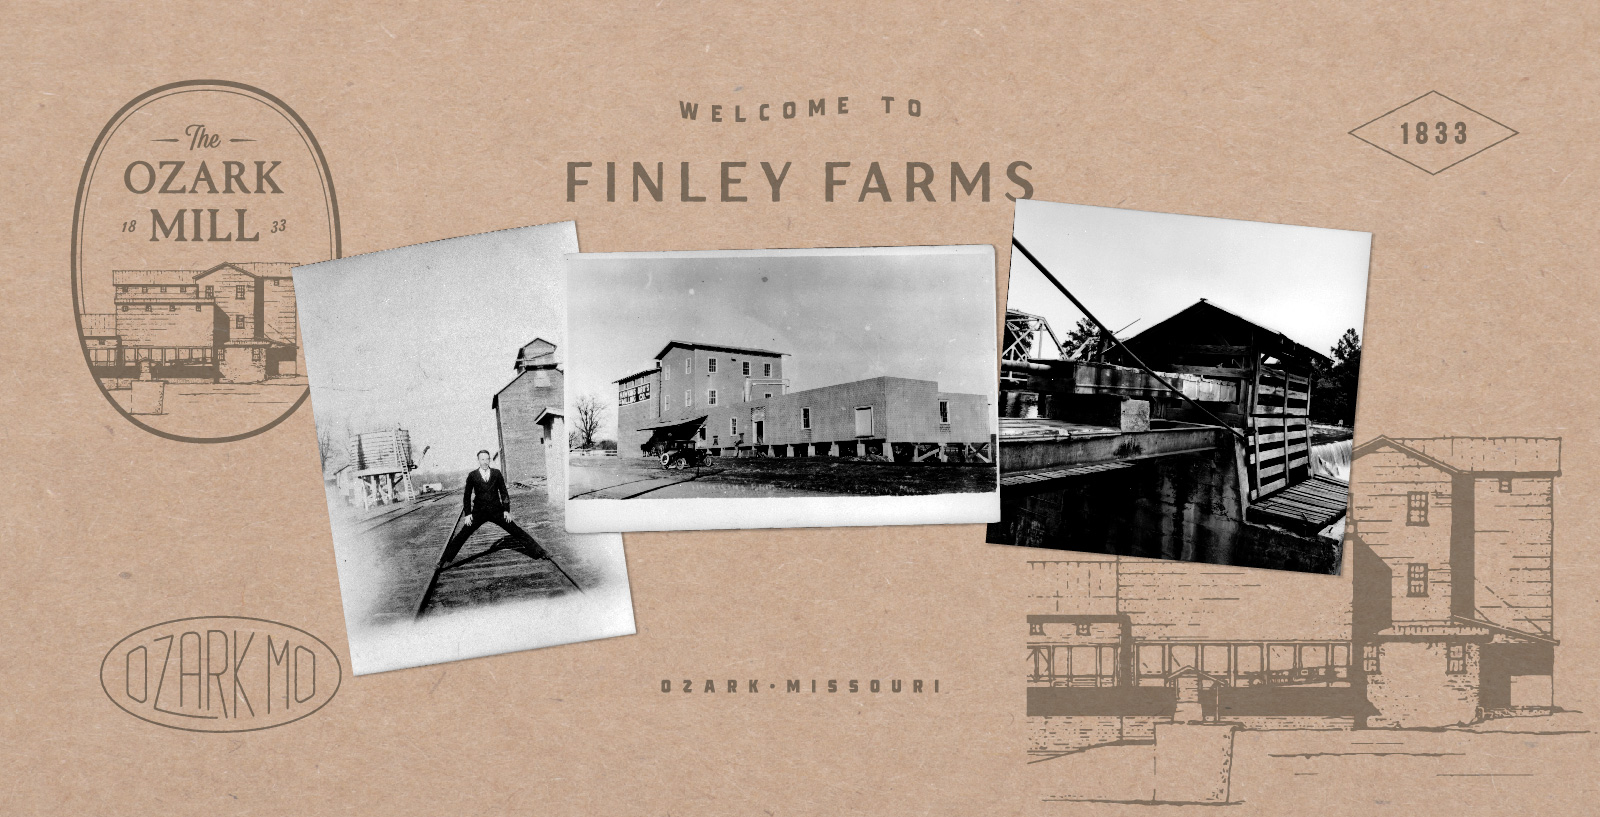 welcome-to-finley-farm-historical-photos